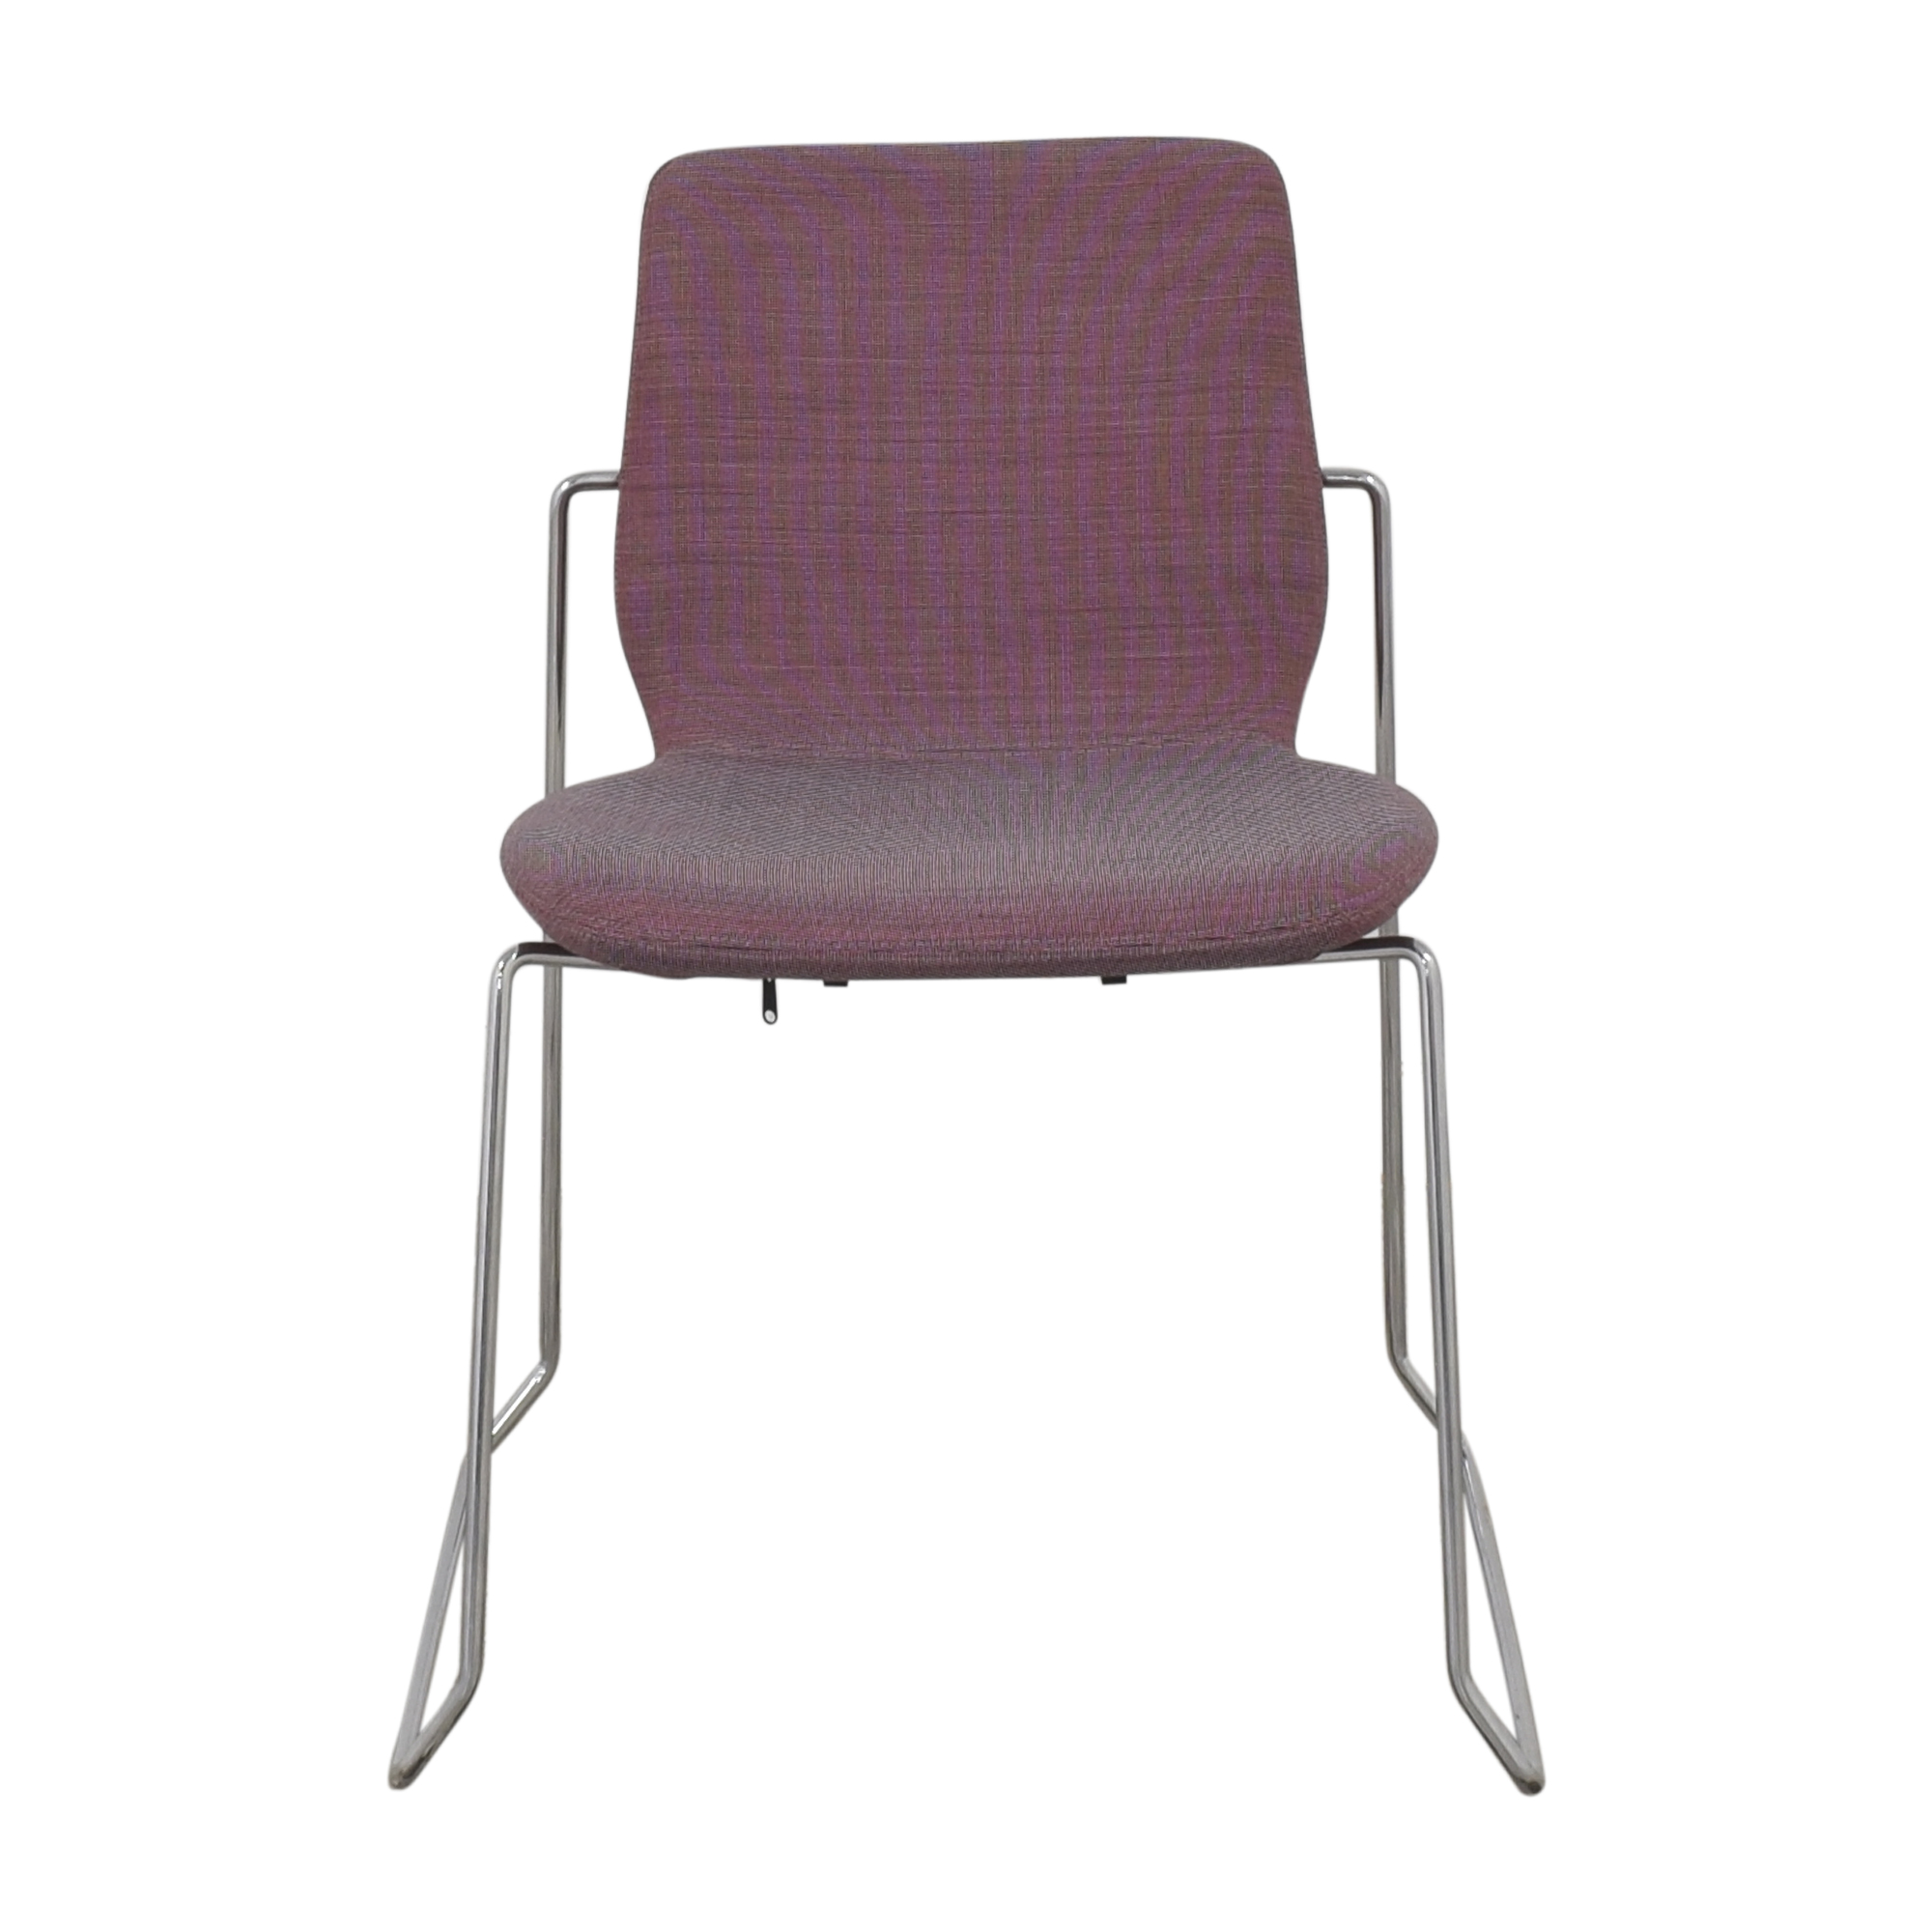 buy Koleksiyon Asanda Armless Chair Koleksiyon Accent Chairs